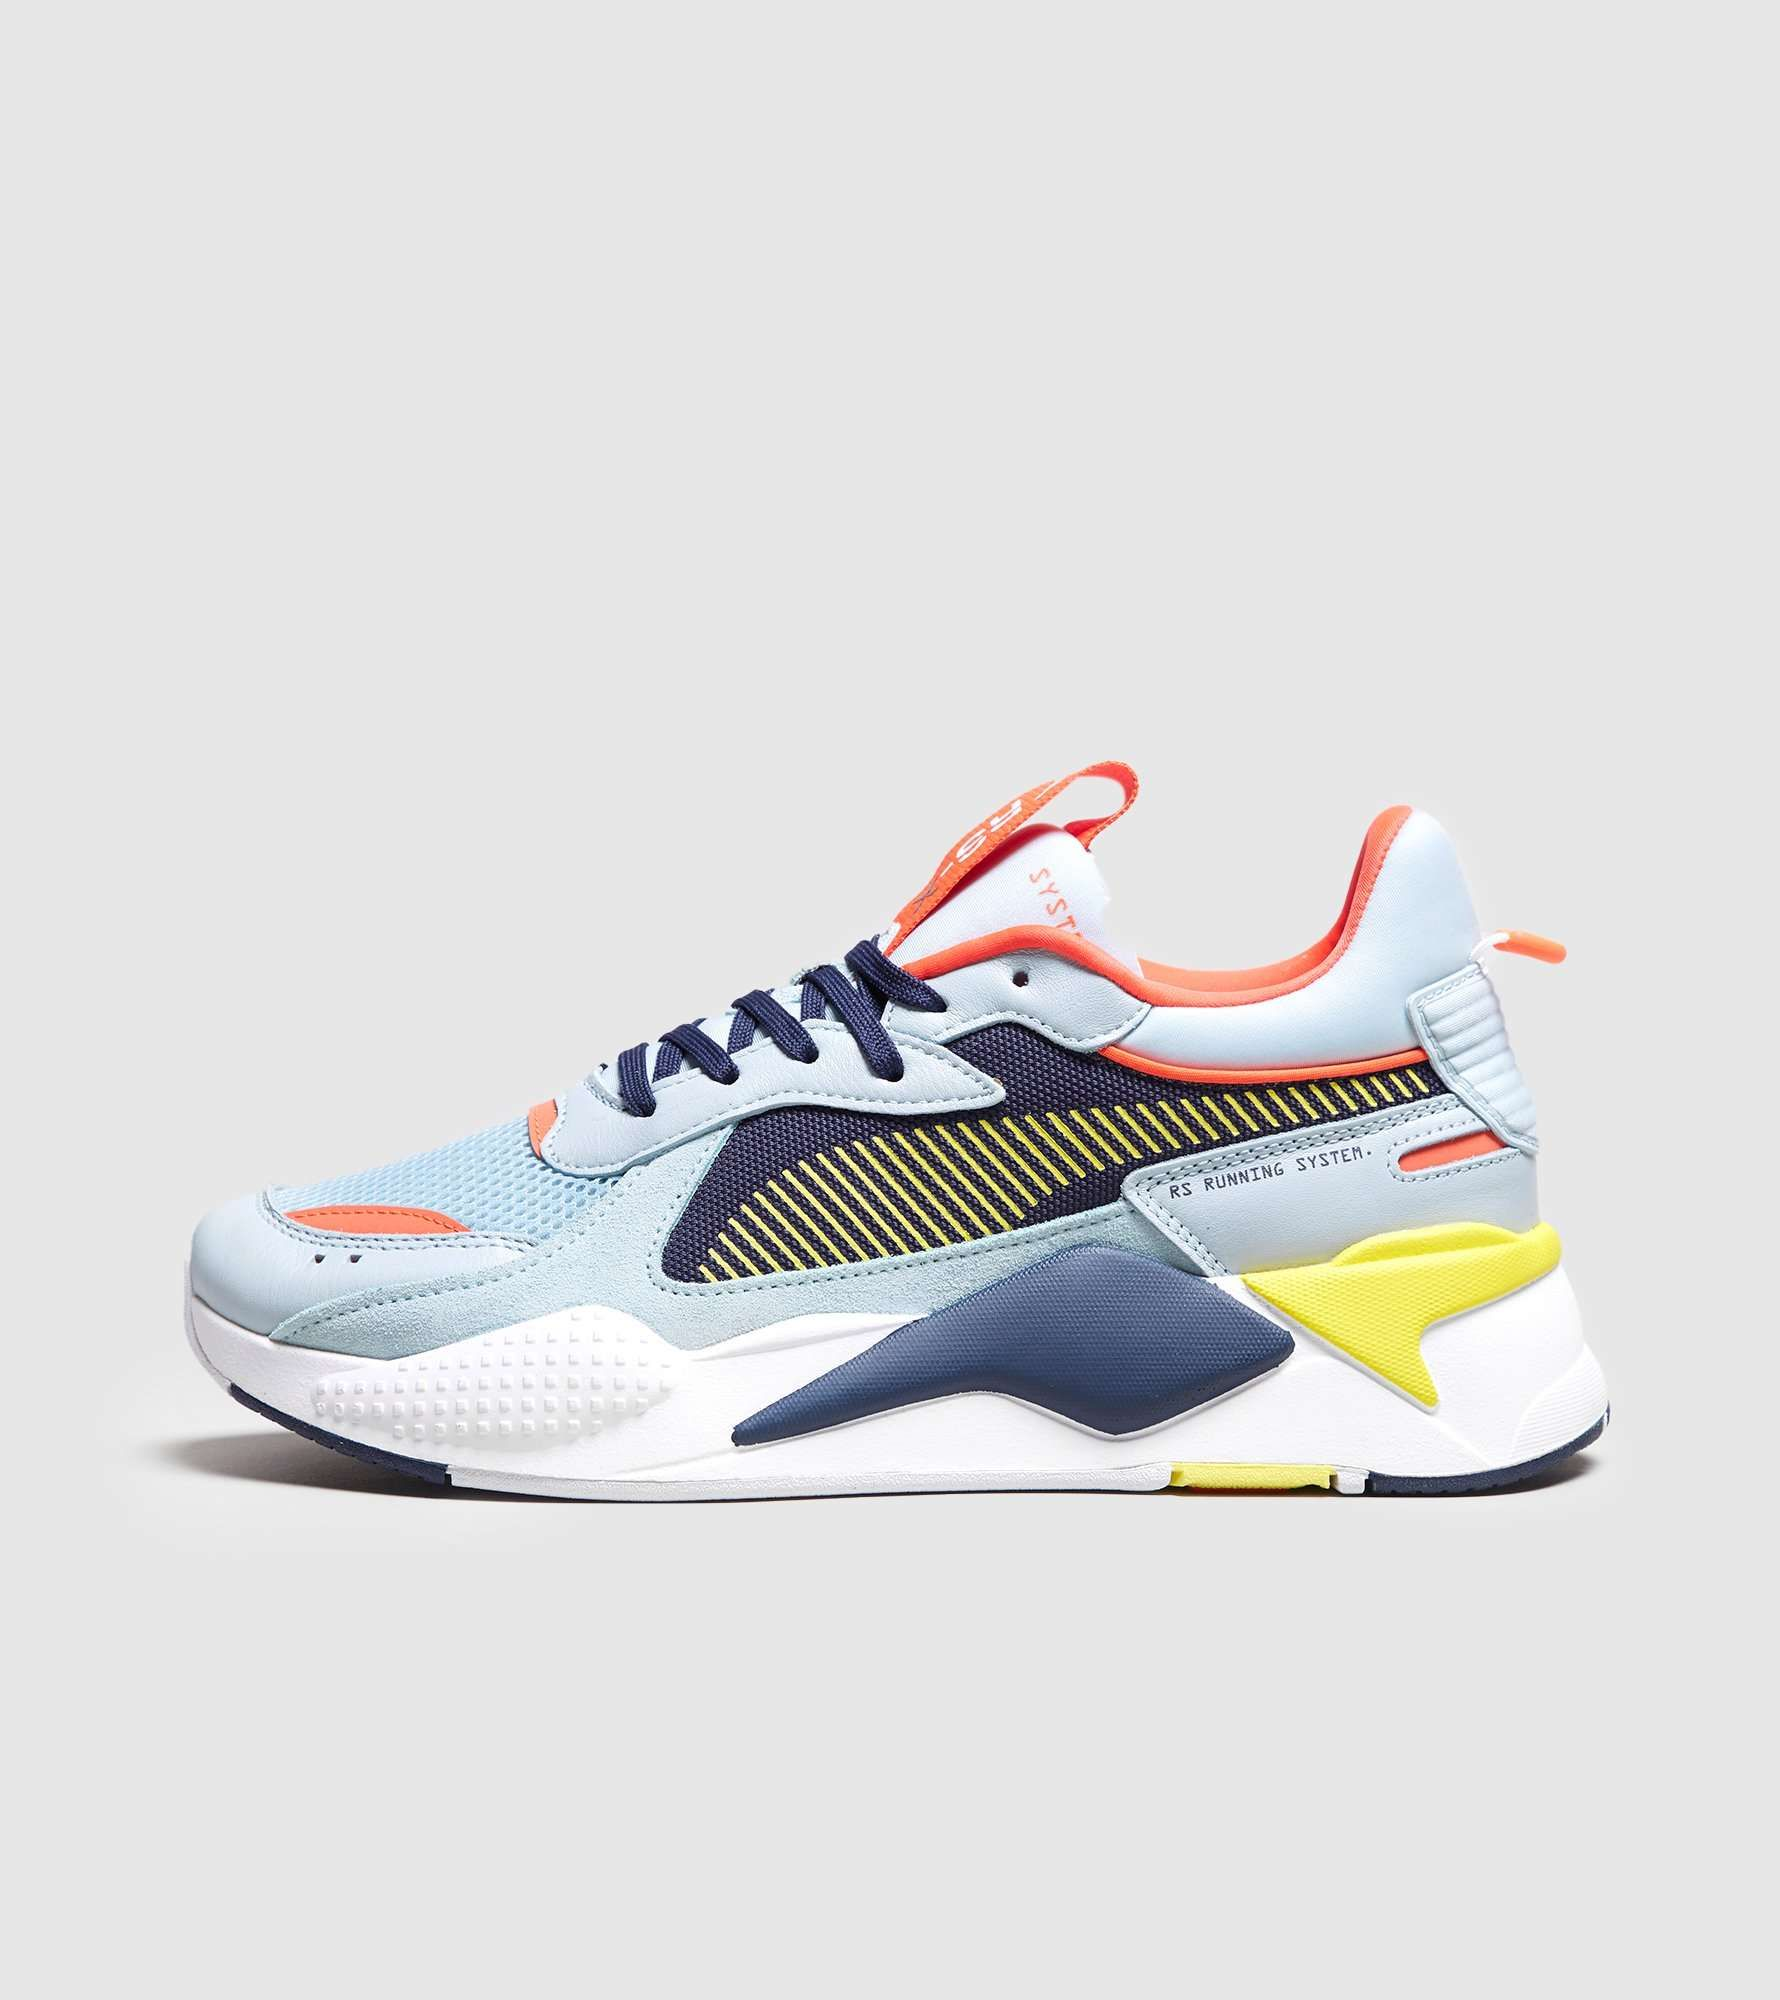 PUMA RS X Reinvention Storlek?Puma skor kvinnor, pappaskor Storlek? Puma shoes women, Dad shoes